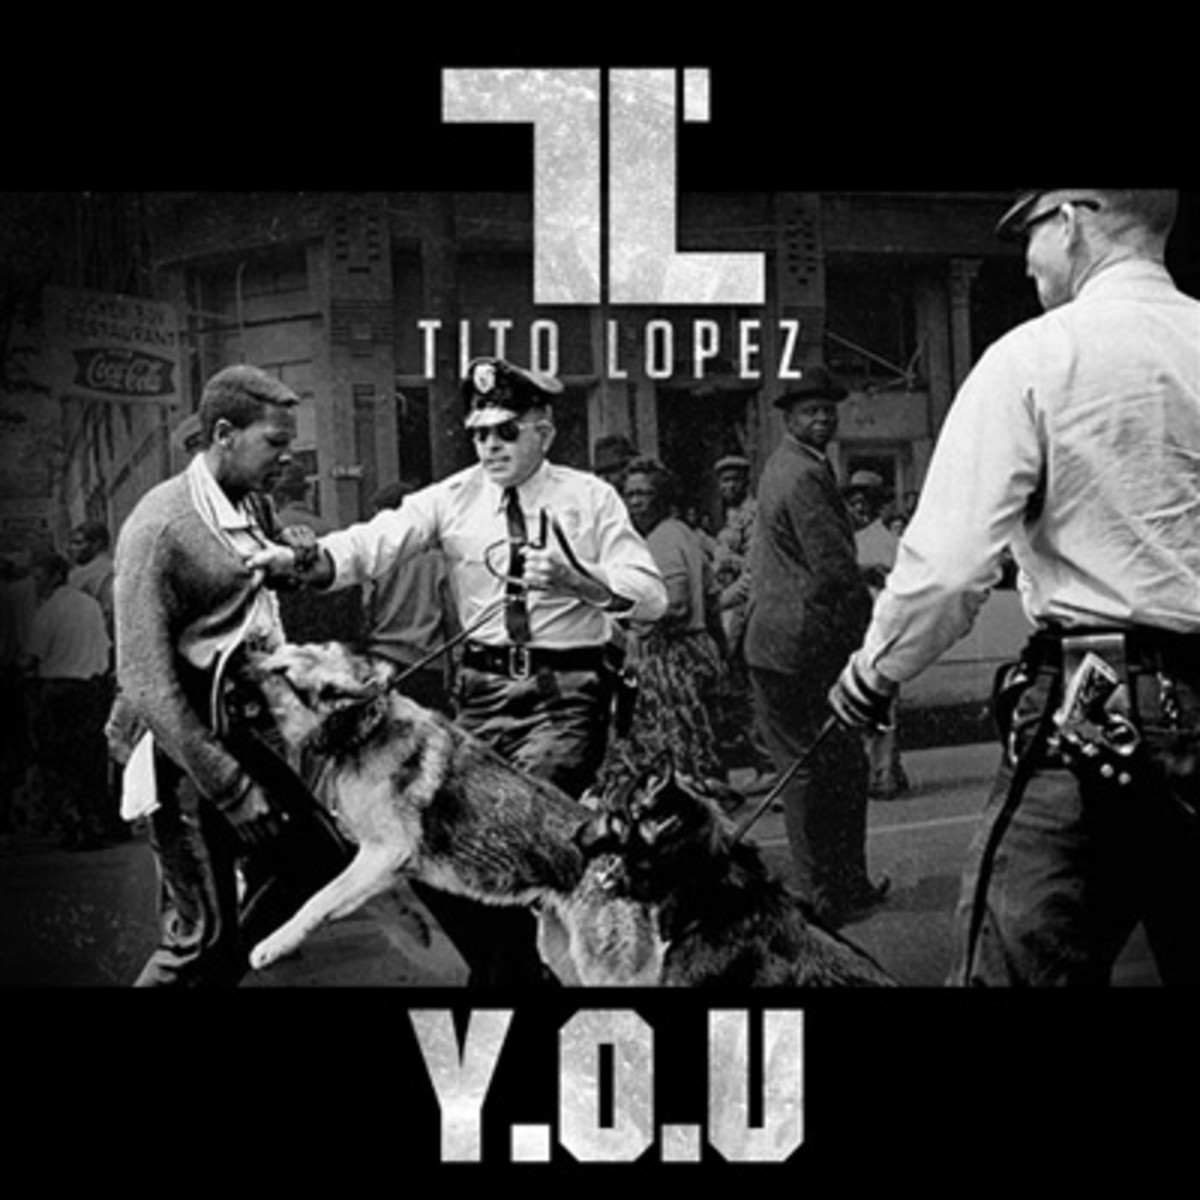 titolopez-you.jpg